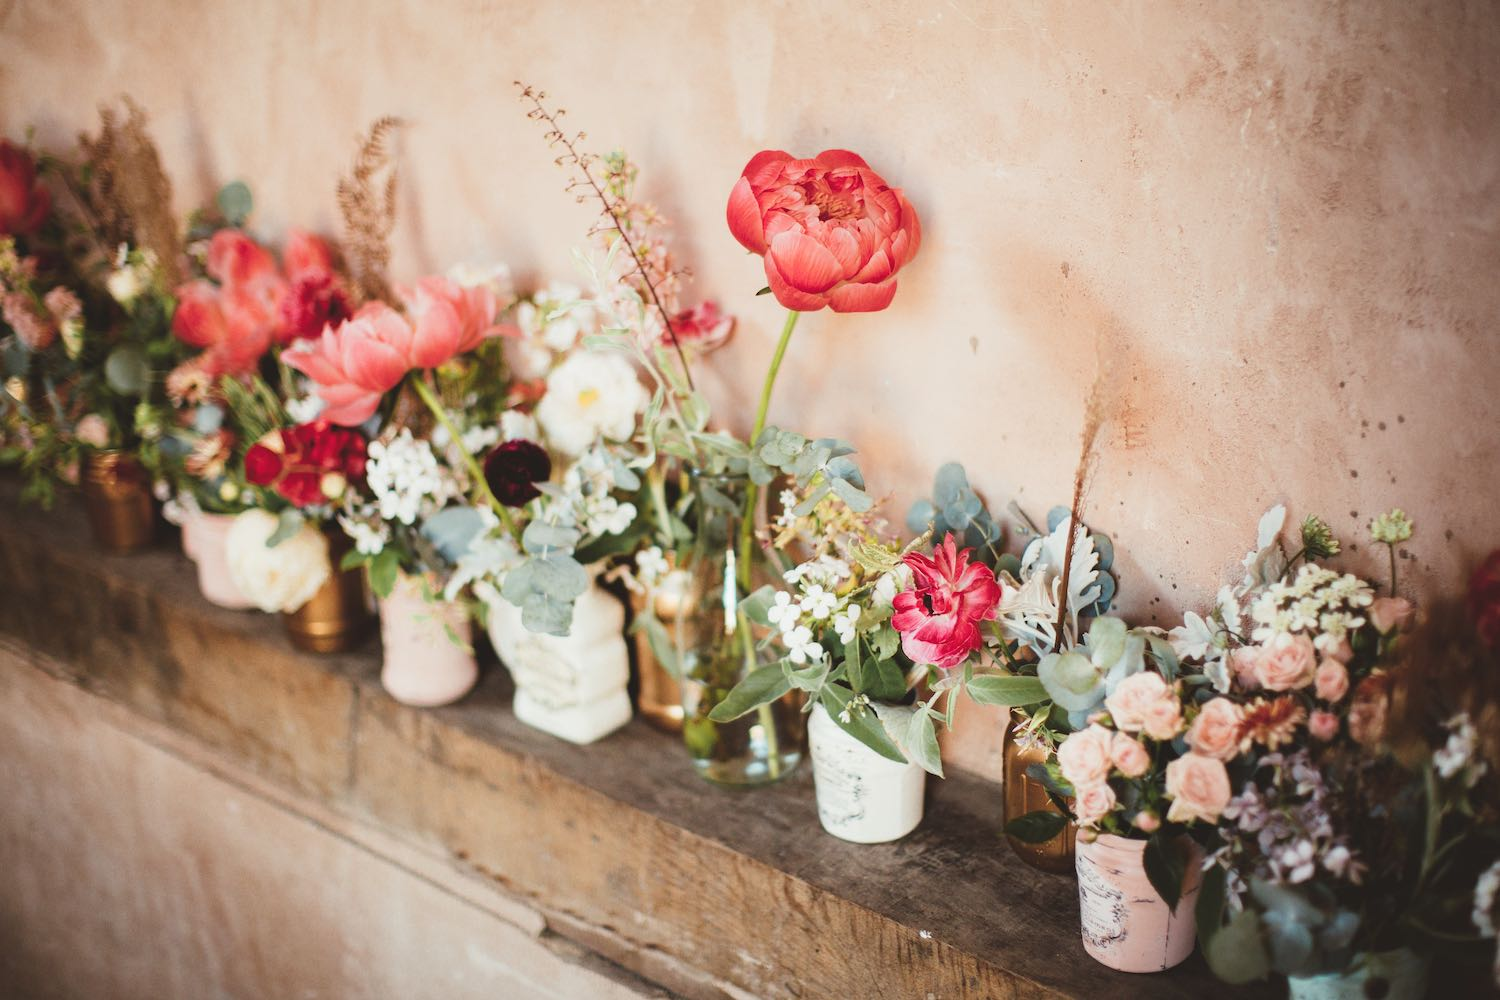 Coral and mint flowers in jars in barn wedding